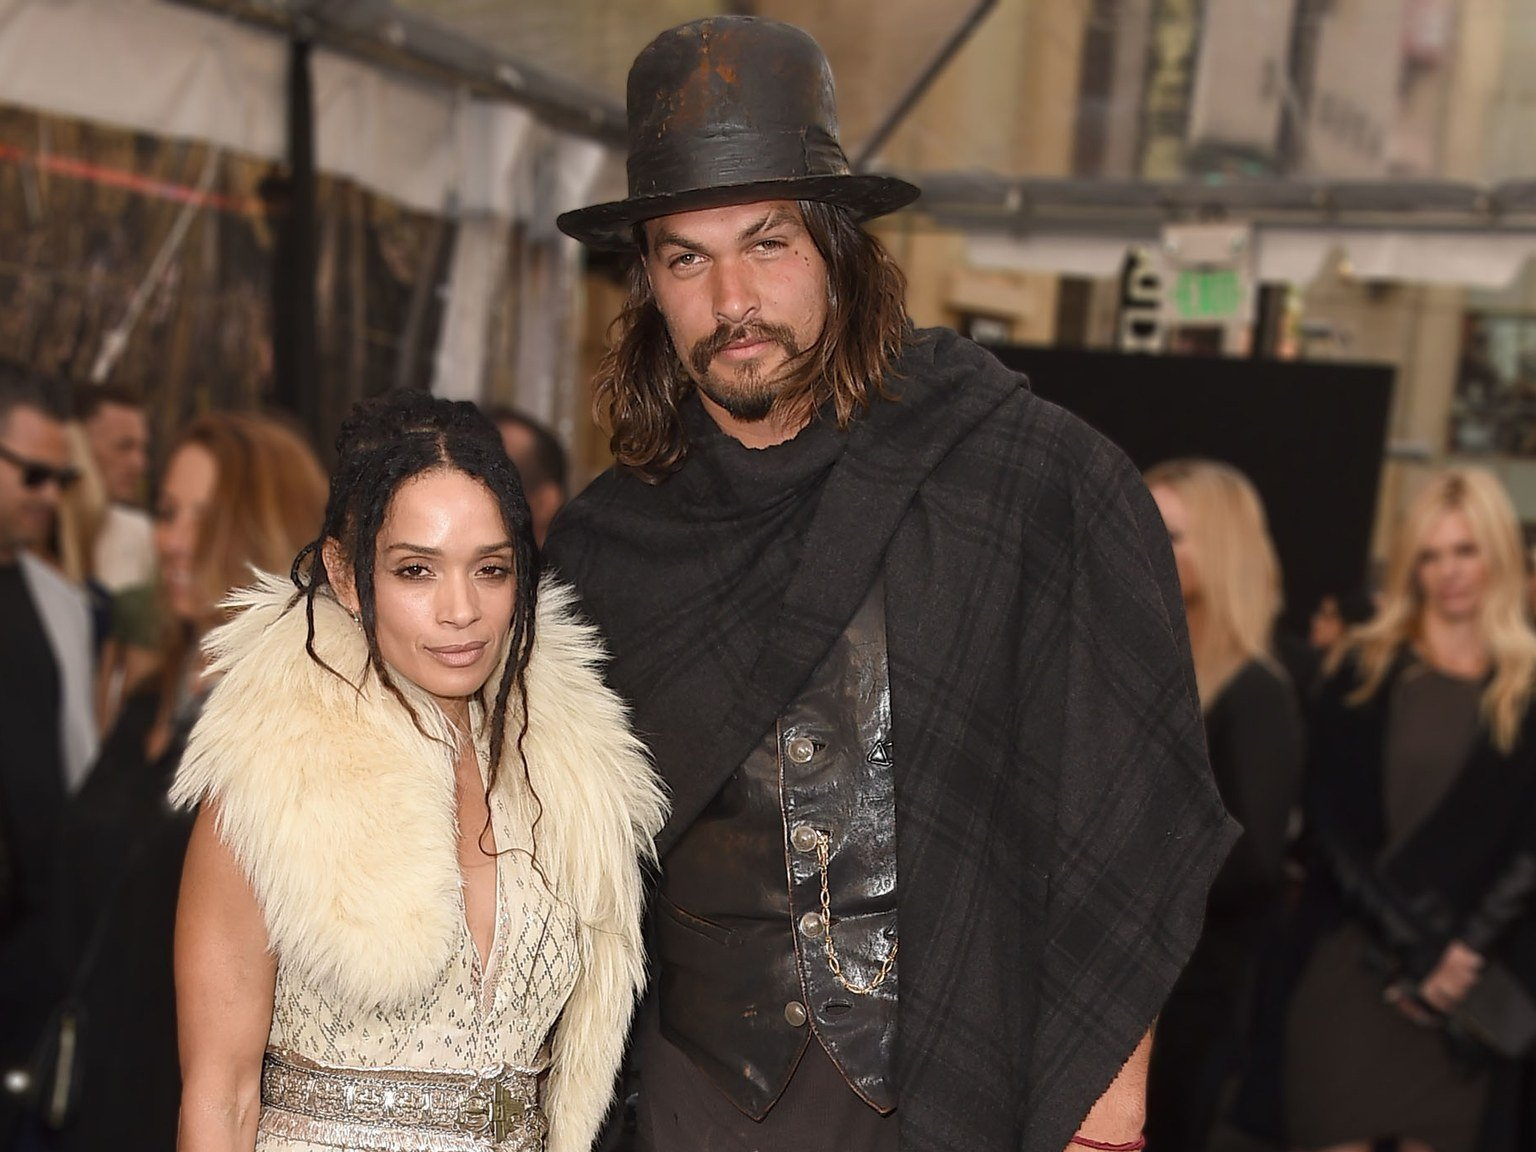 How is the married life of the new married couple, Lisa Bonet and Jason Momoa? Are they still in the romantic honeymoon phase?